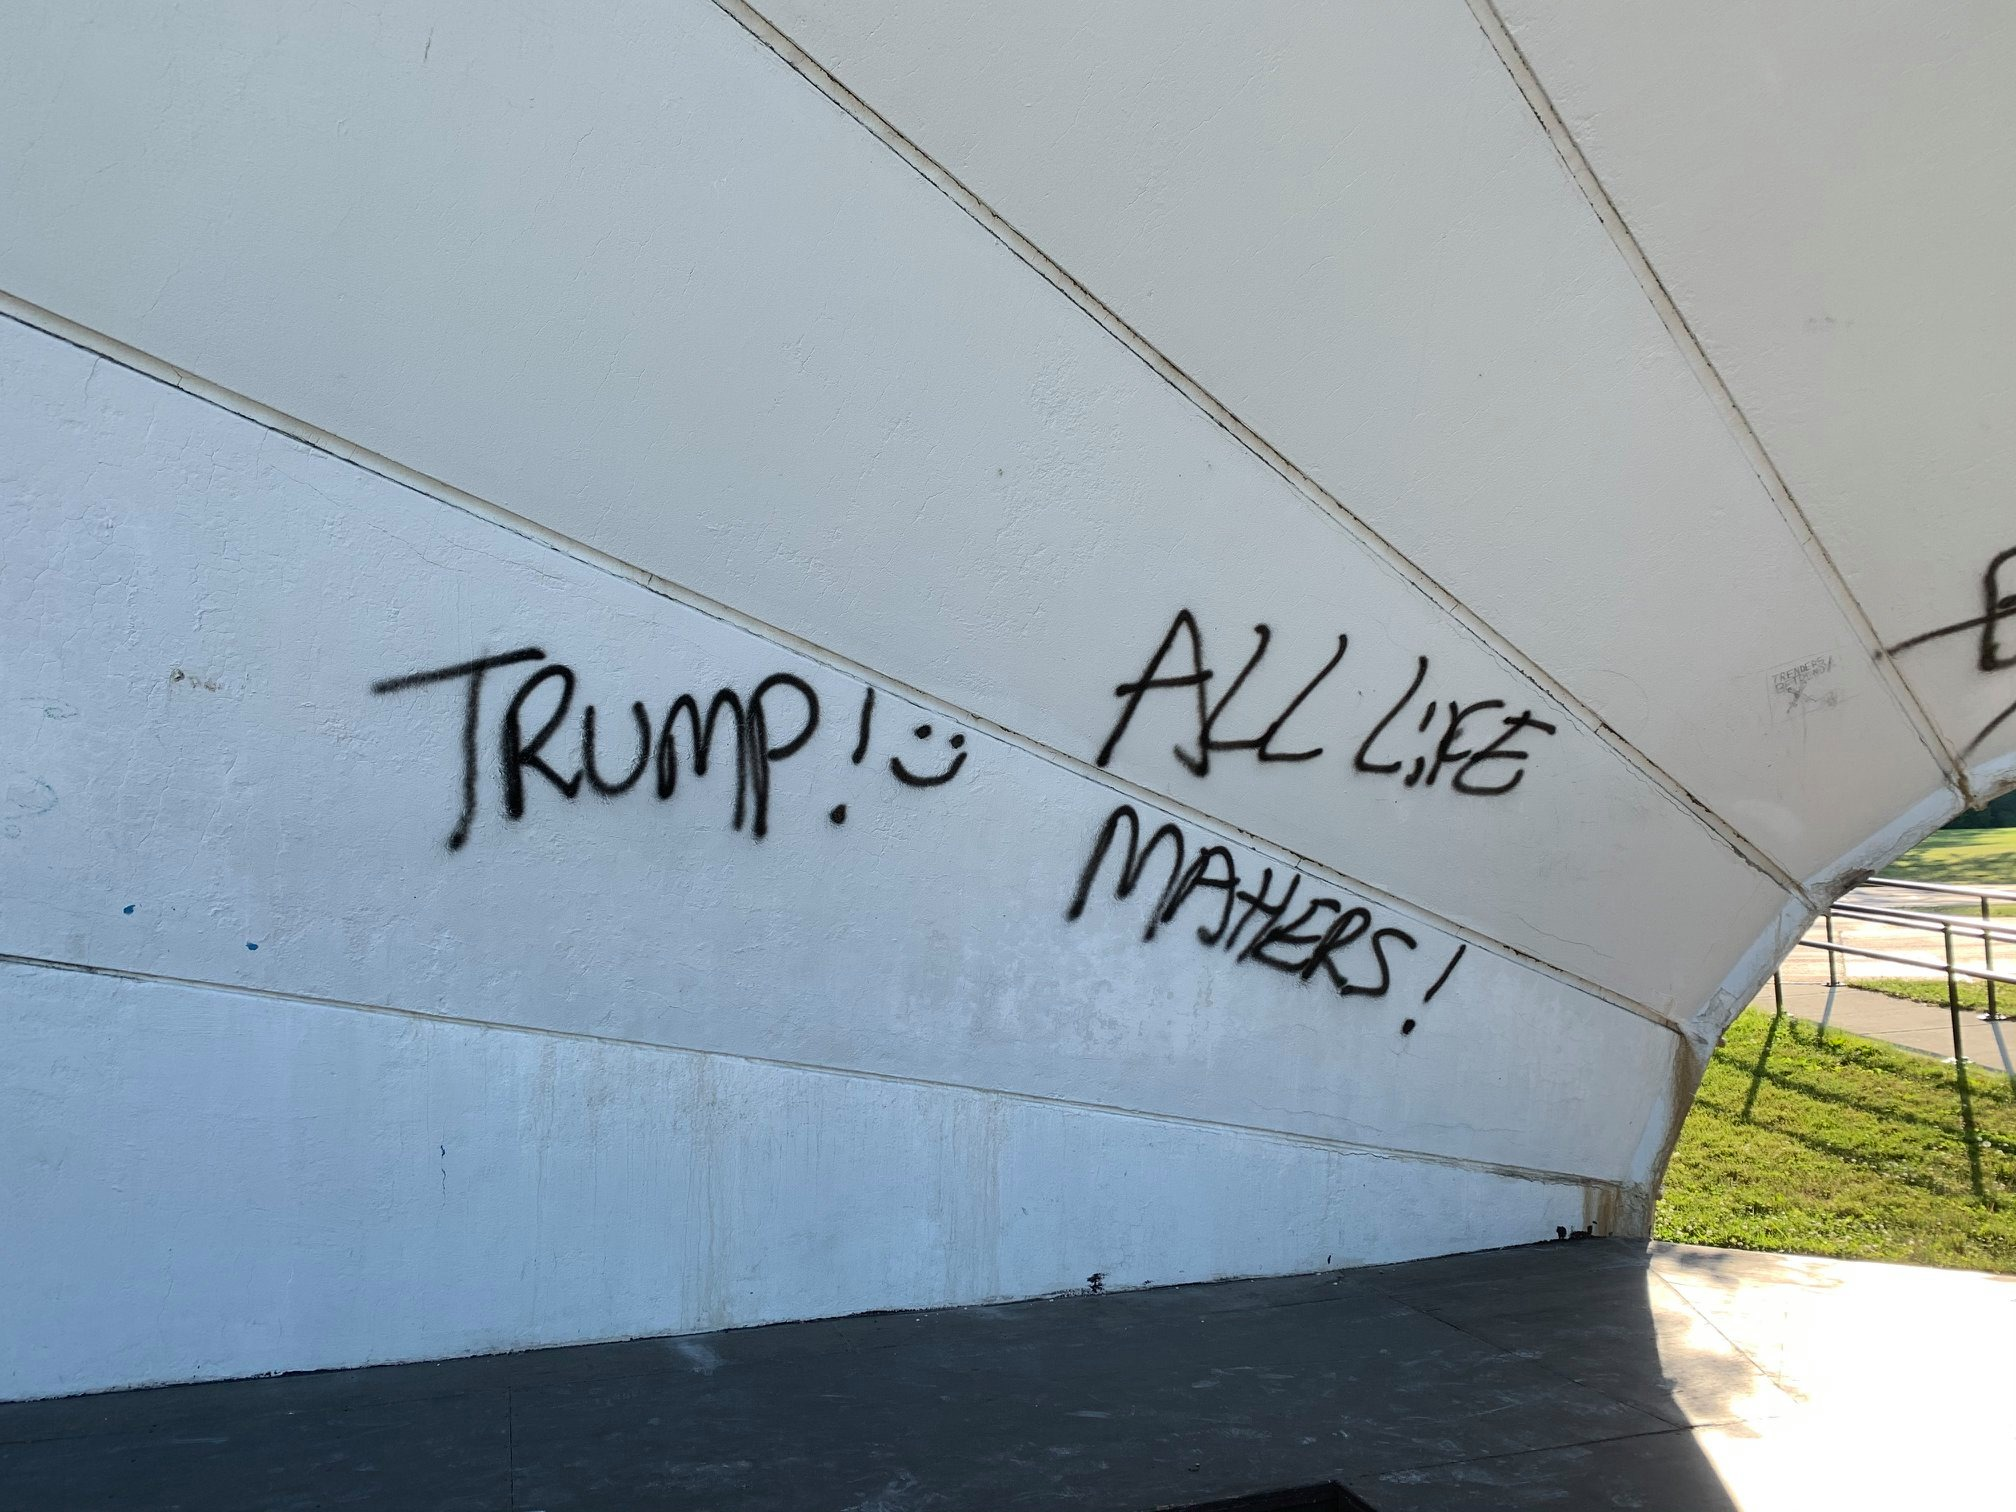 Community Band Shell Vandalized